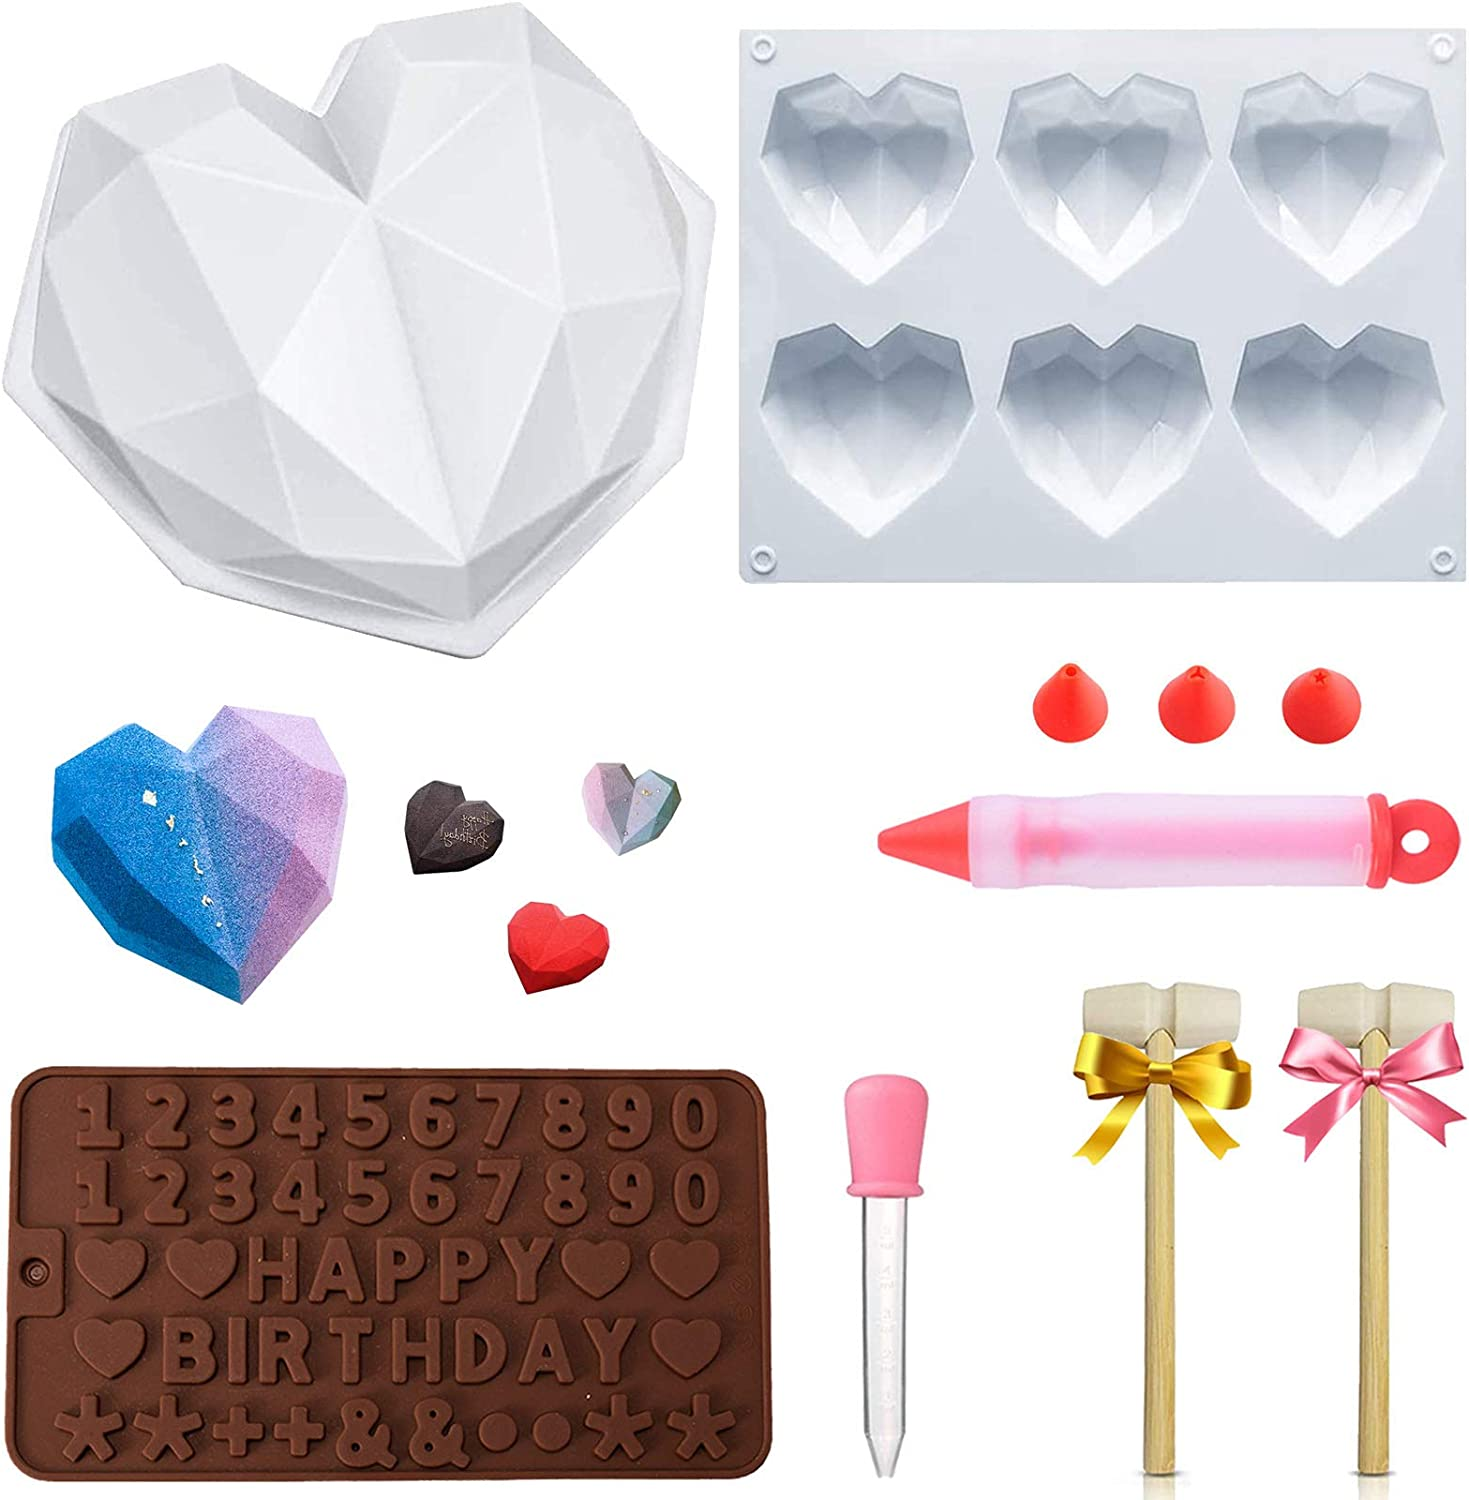 Silicone Sphere Mold Heart Molds for Chocolate Trays Breakable Heart 6 Cup 3D Small Geometric Diamond and Round Shapes Cake Pan with Wooden Harmmer Silicone Brush Cake Decorator for Diy Baking Tools